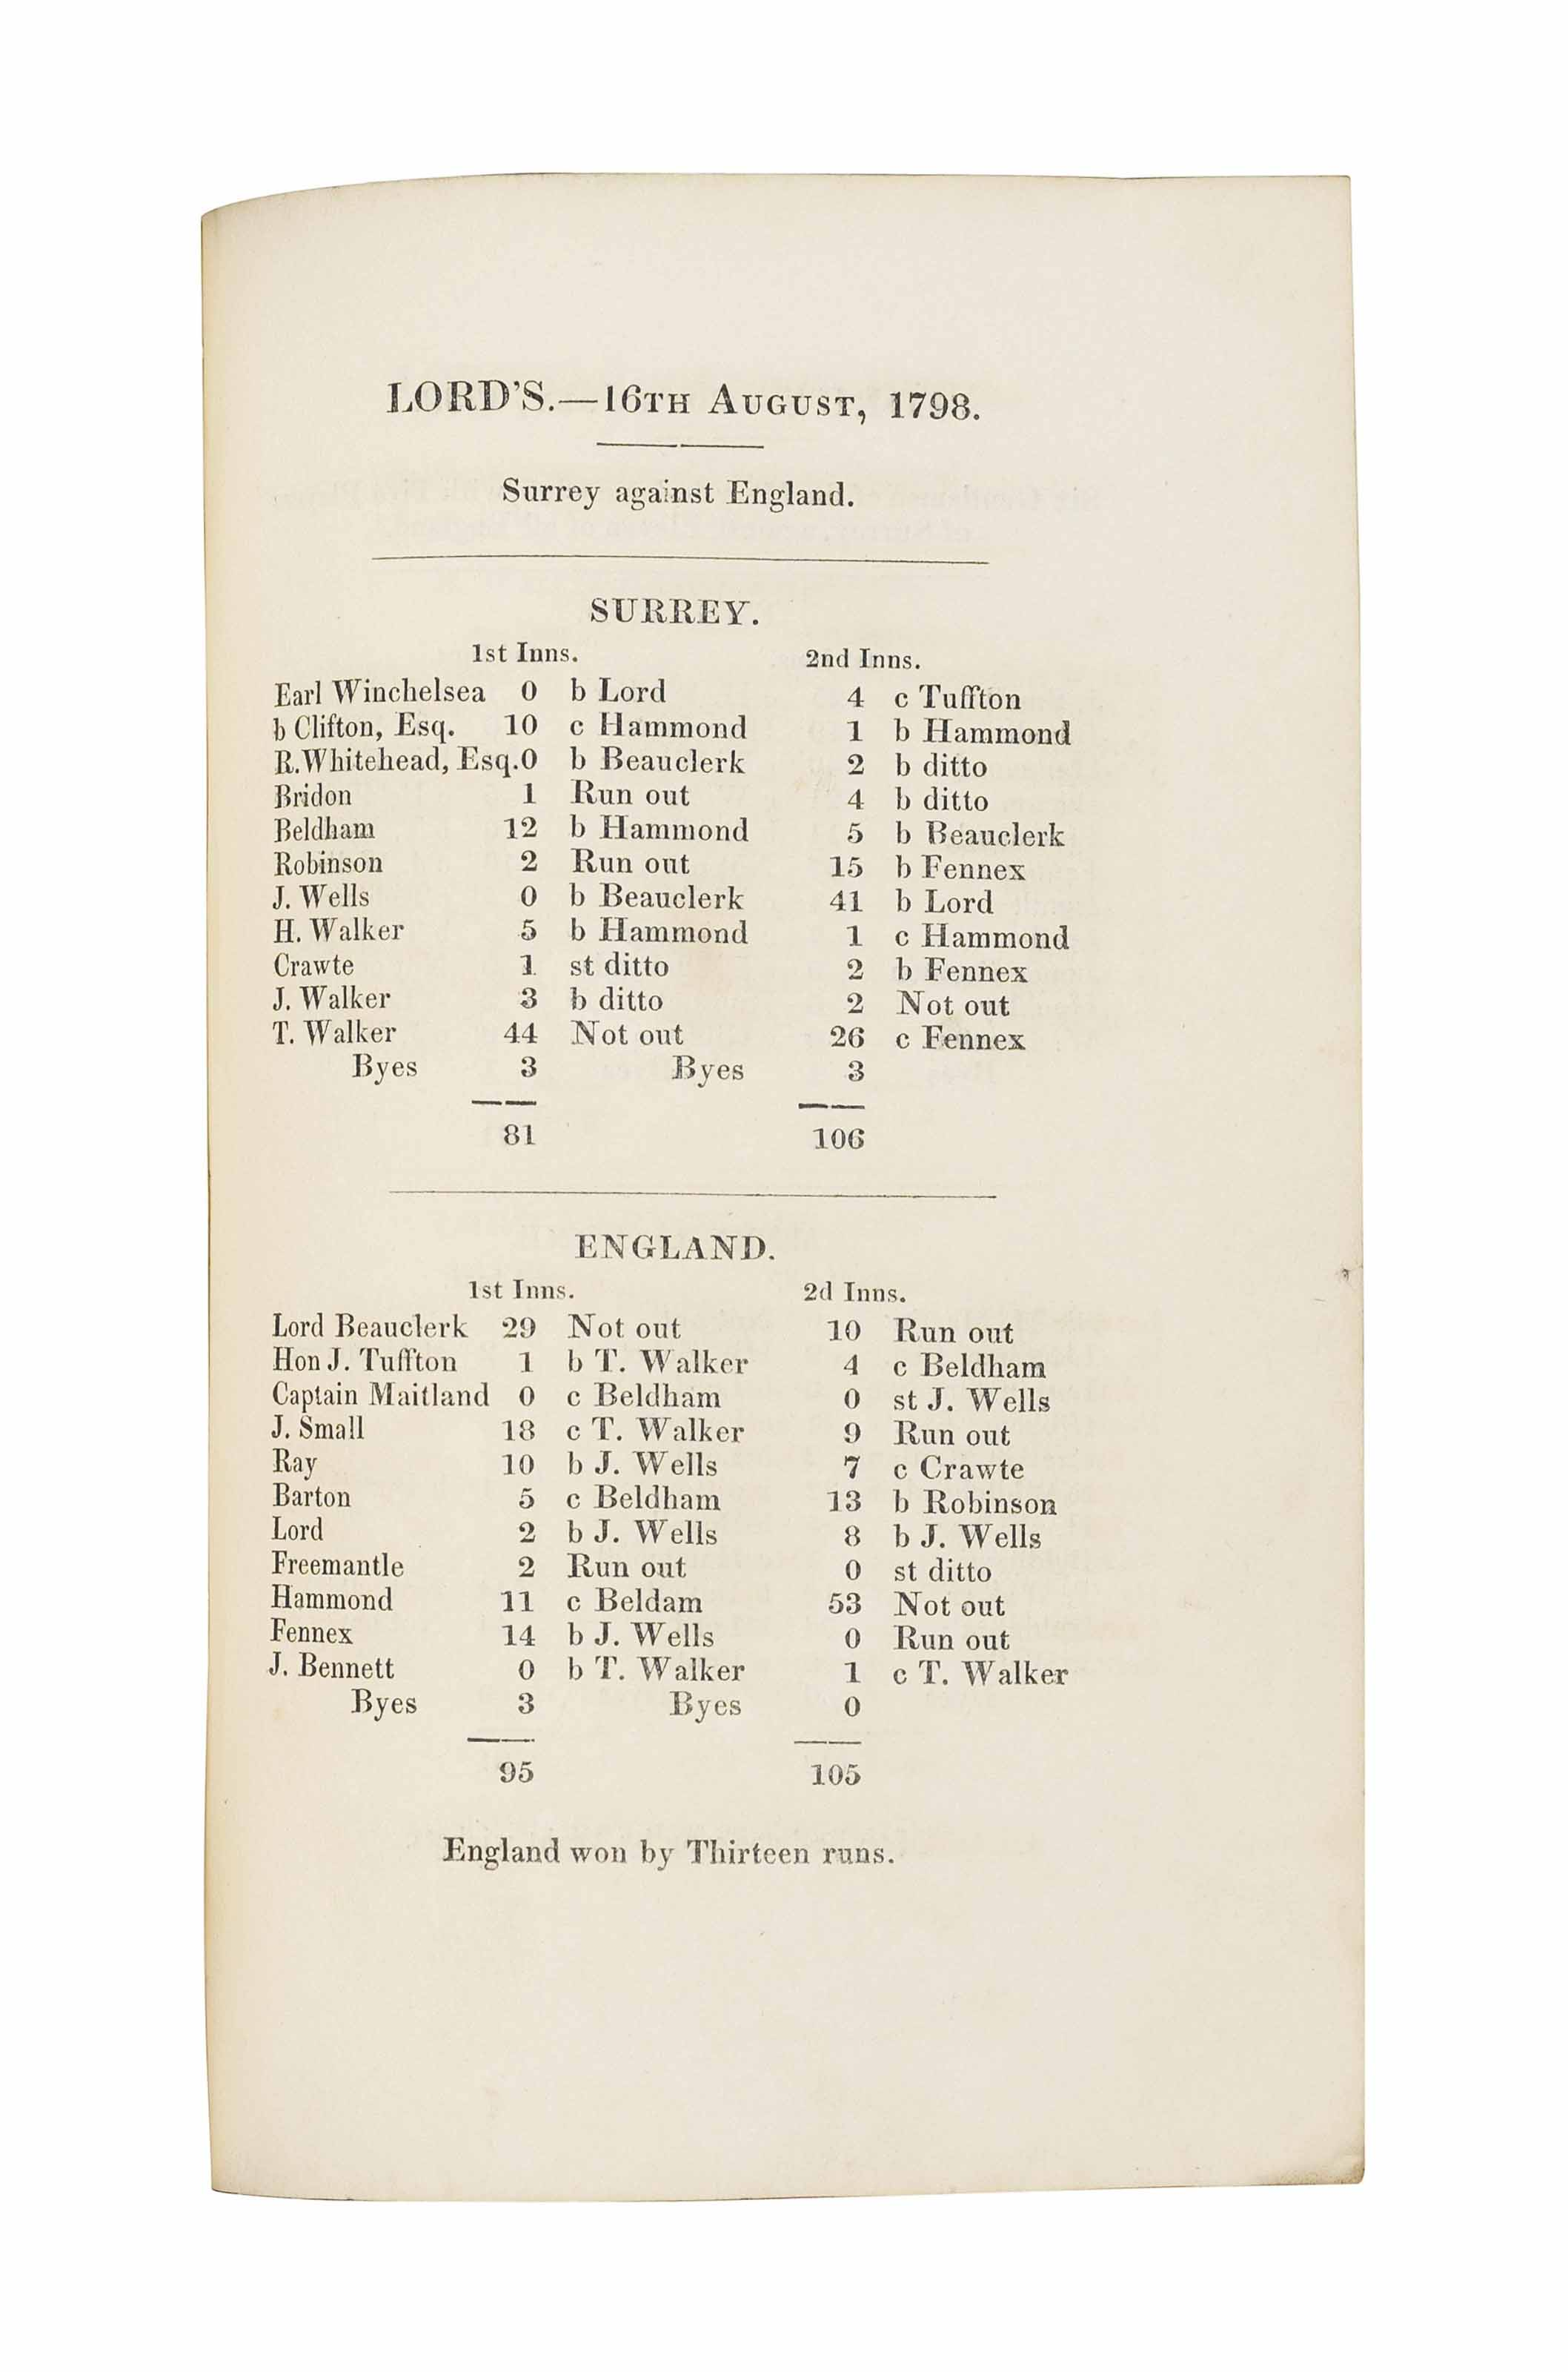 BENTLEY, Henry. A Correct Account of All Cricket Matches ... played ... 1786 to 1822. London: T. Traveller, 1823. 8° (203 x 120mm). (Soiling to margins, some spotting, *S4 torn at upper margin.) Uncut in contemporary marbled boards backed in black calf (spine restored but subsequently worn, front cover detaching). Provenance: Irving Rosenwater (Collection Catalogue I, 19).